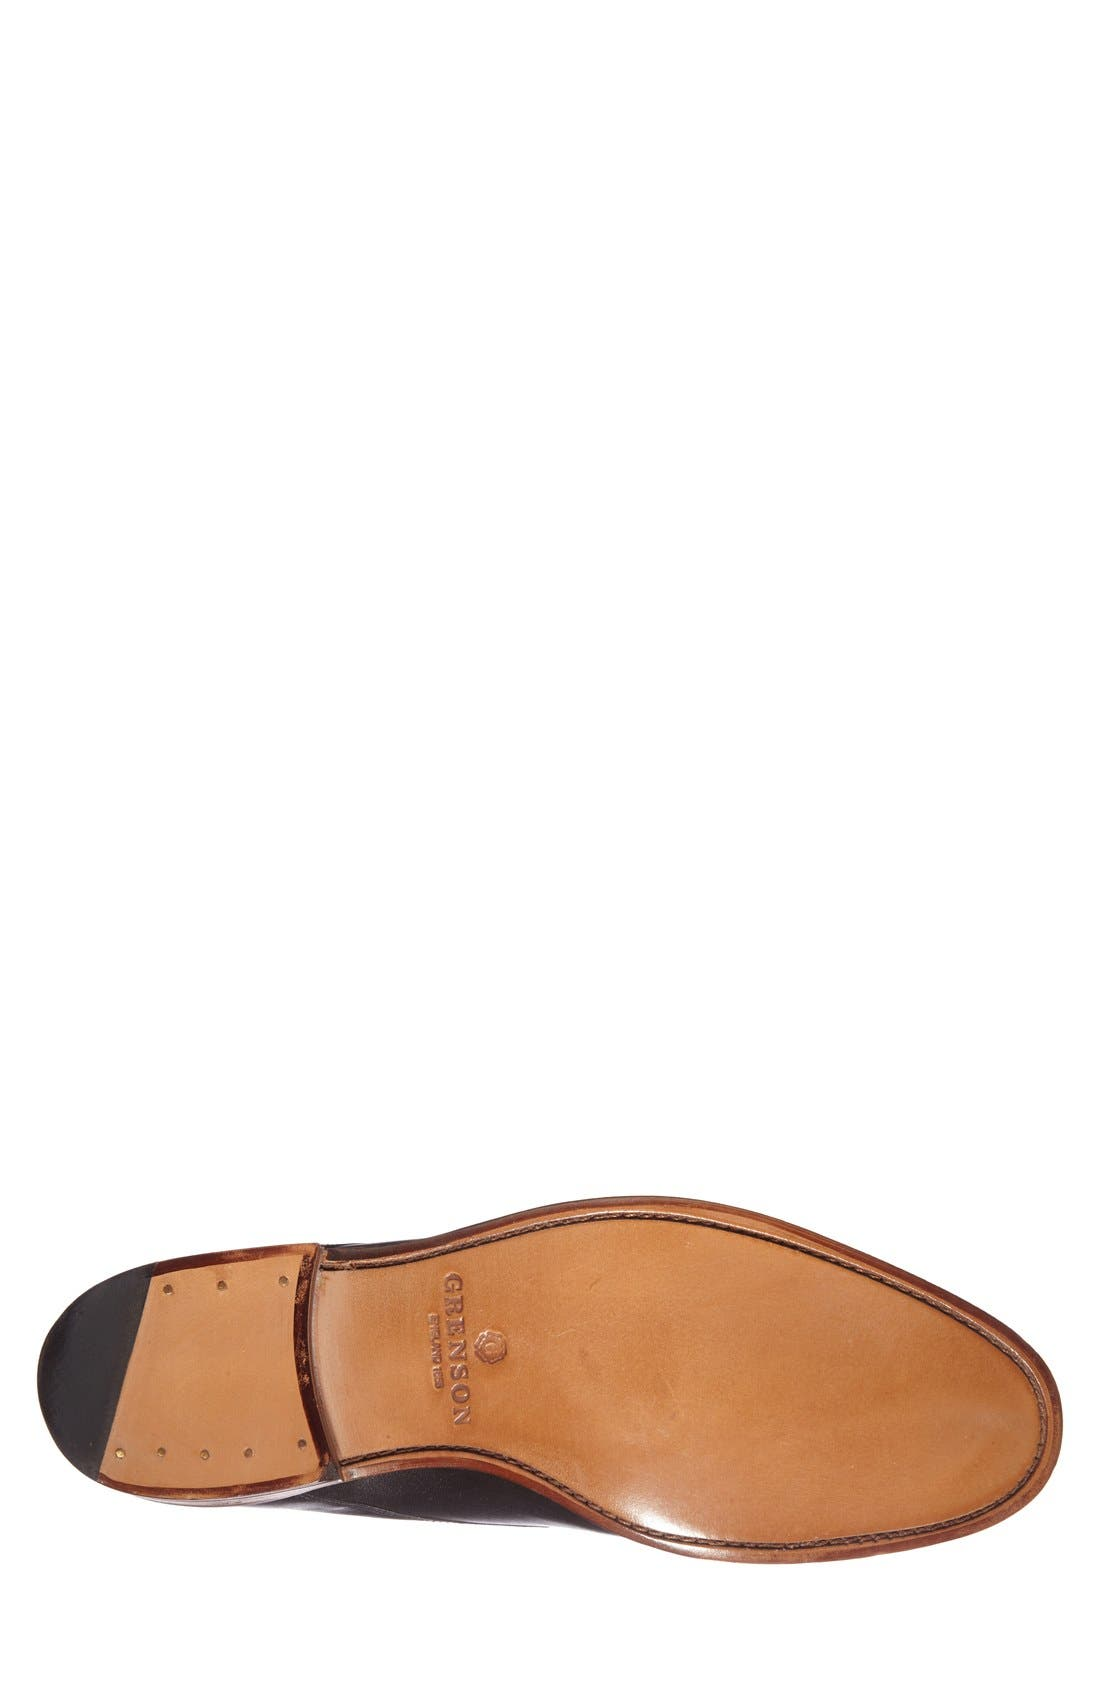 GRENSON,                             'Toby' Leather Plain Toe Derby,                             Alternate thumbnail 3, color,                             001